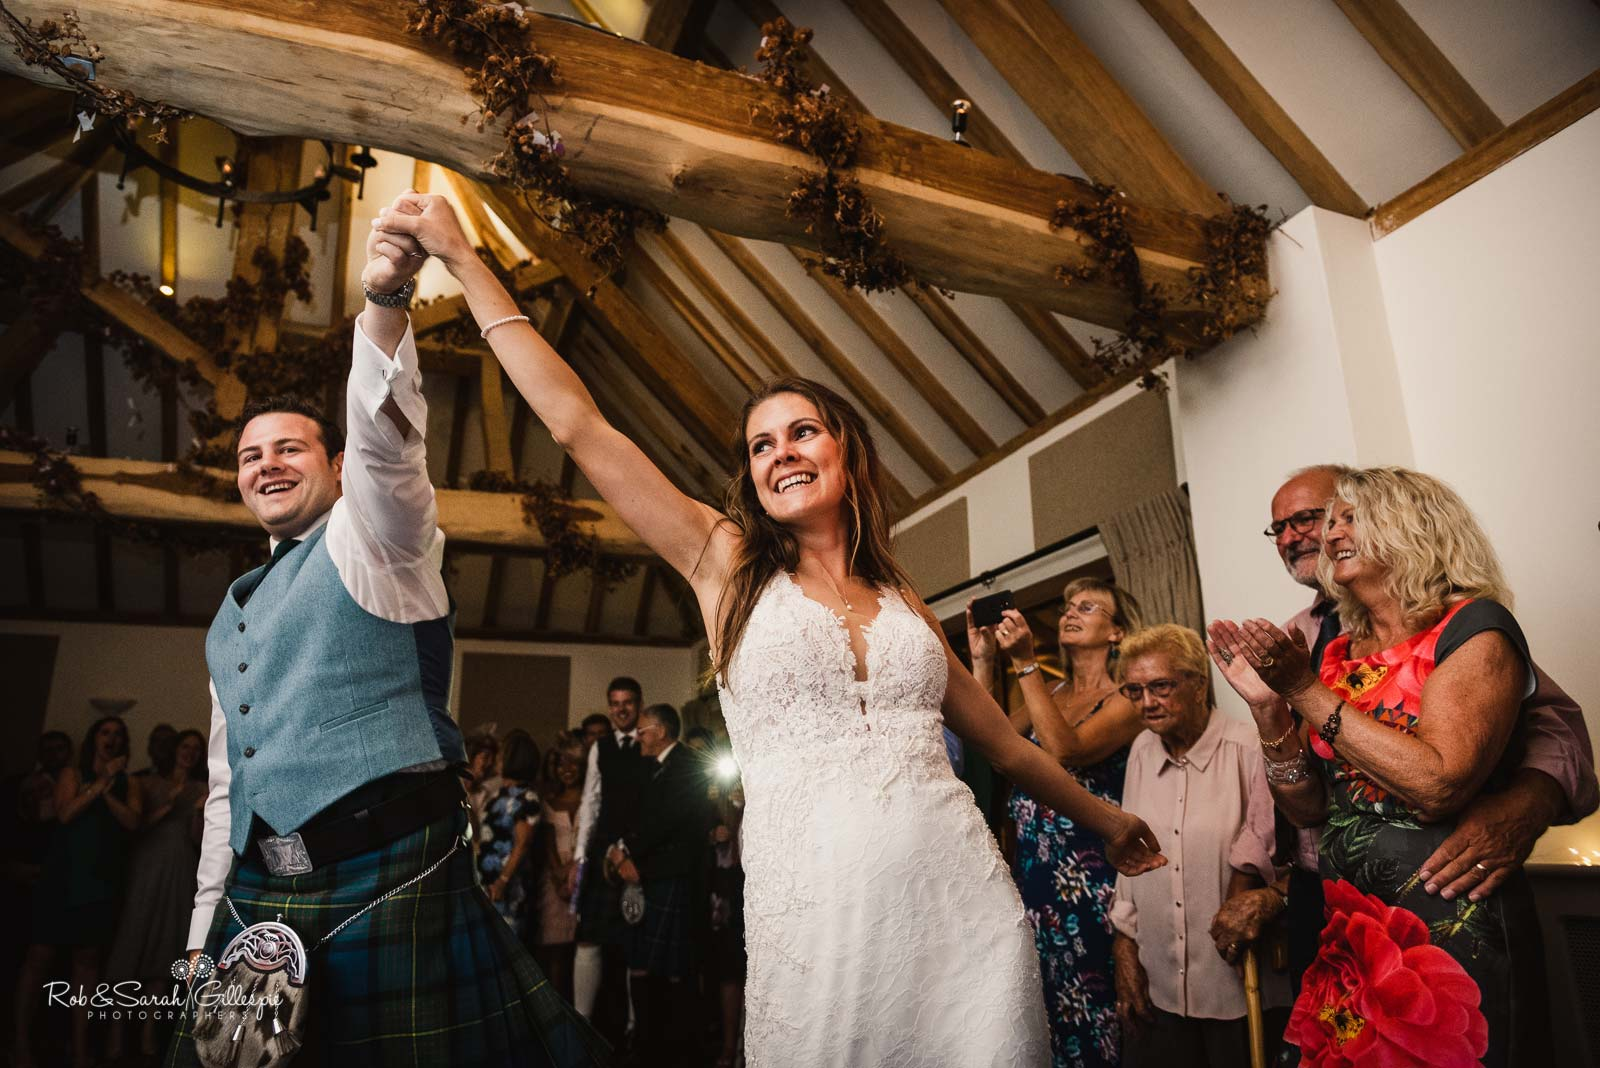 Bride and groom first dance at Wethele Manor